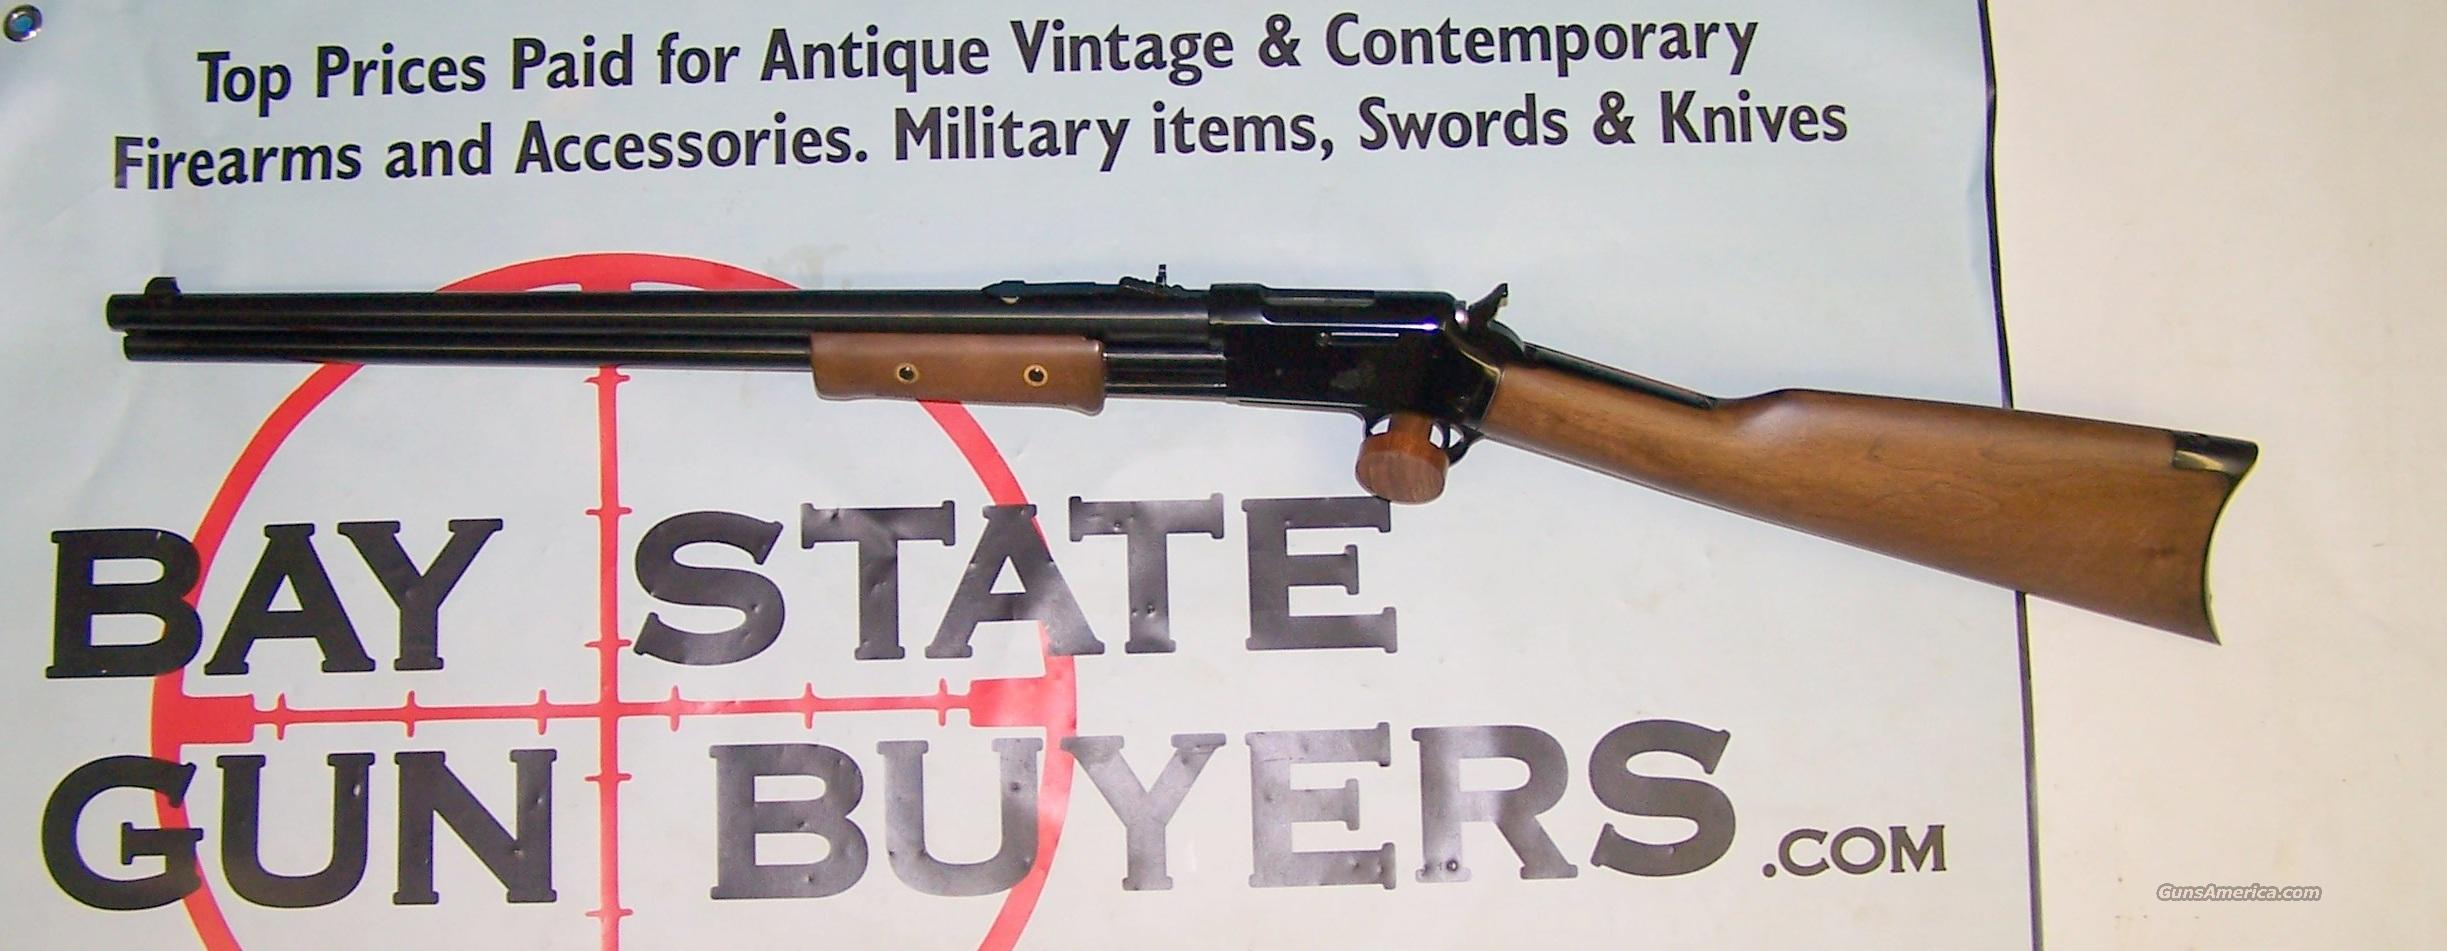 American Western Arms LIGHTNING Pump Action CARBINE Rifle 44-40 cal. LIKE NEW   Guns > Rifles > American Western Arms (AWA) Rifles